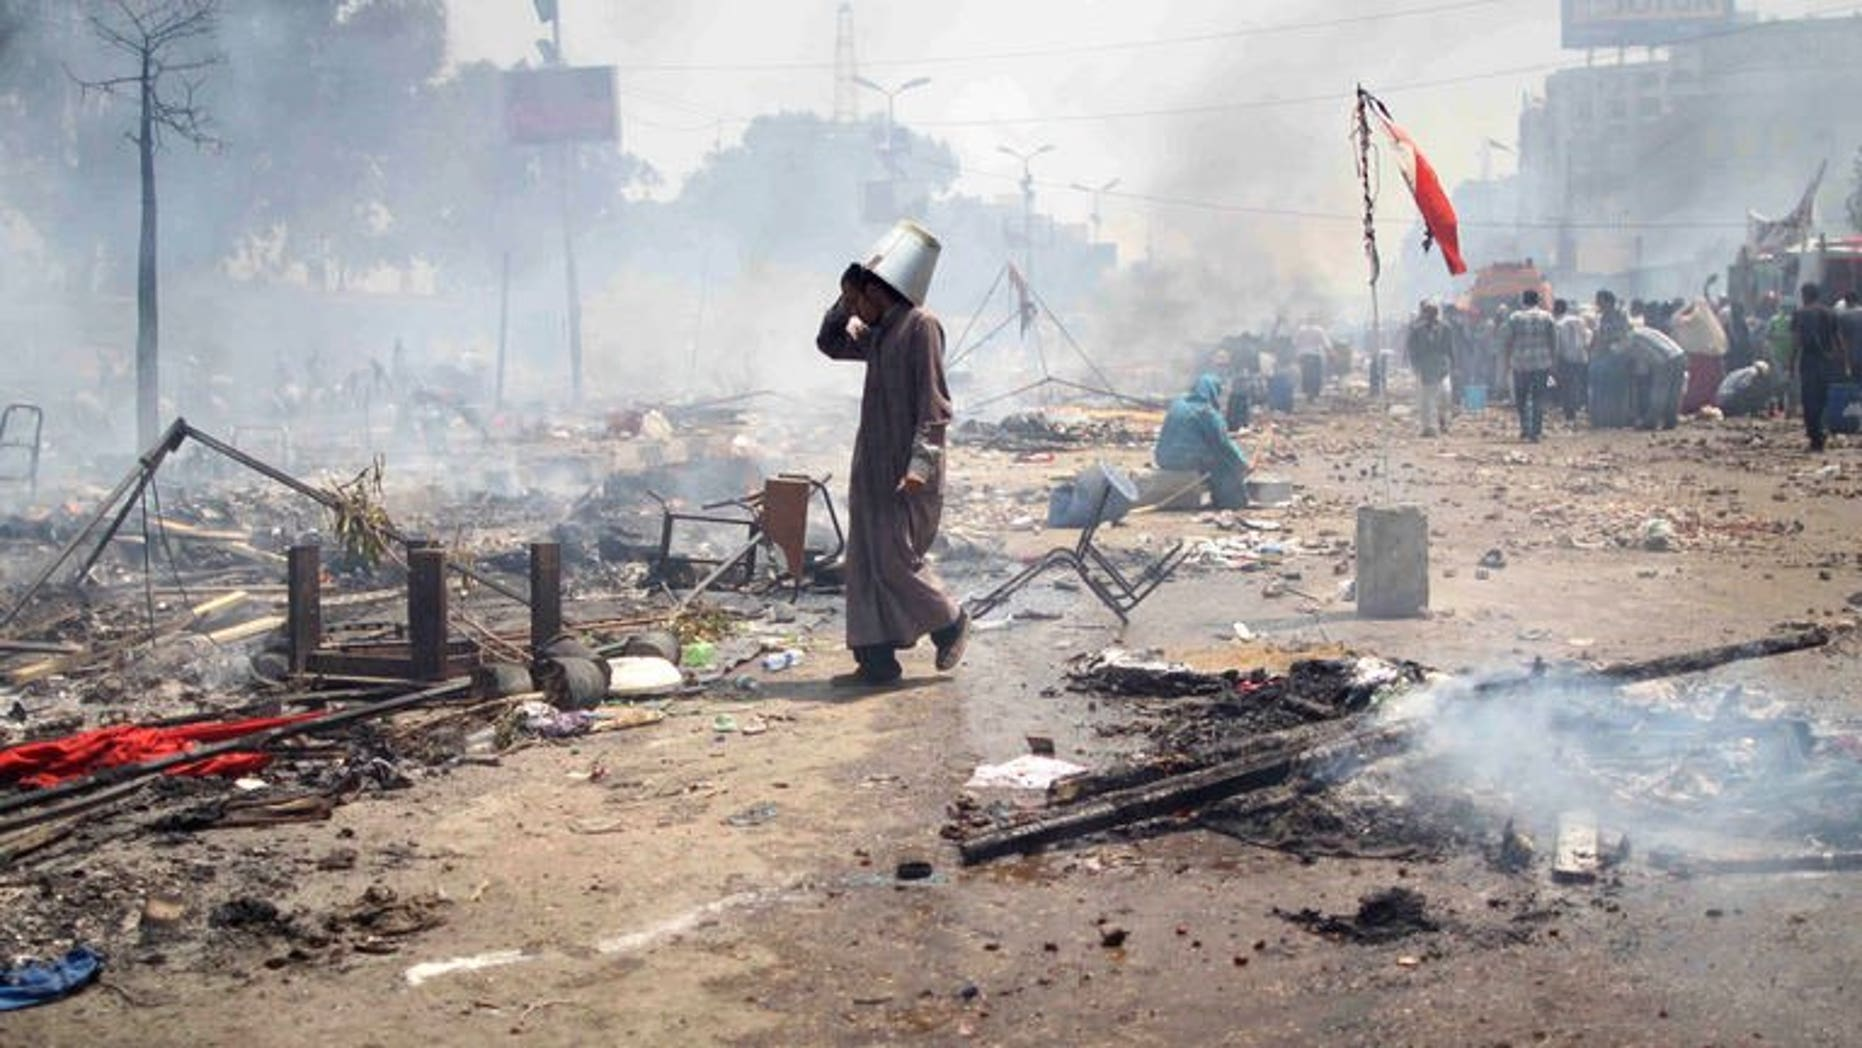 """A supporter of Egypt's ousted president Mohamed Morsi walks through the debris following clashes with police in Cairo on August 14, 2013. Egyptian security forces were in """"total control"""" of the main protest camp of supporters of ousted president Mohamed Morsi on Wednesday after a day of deadly clashes, a security official said."""